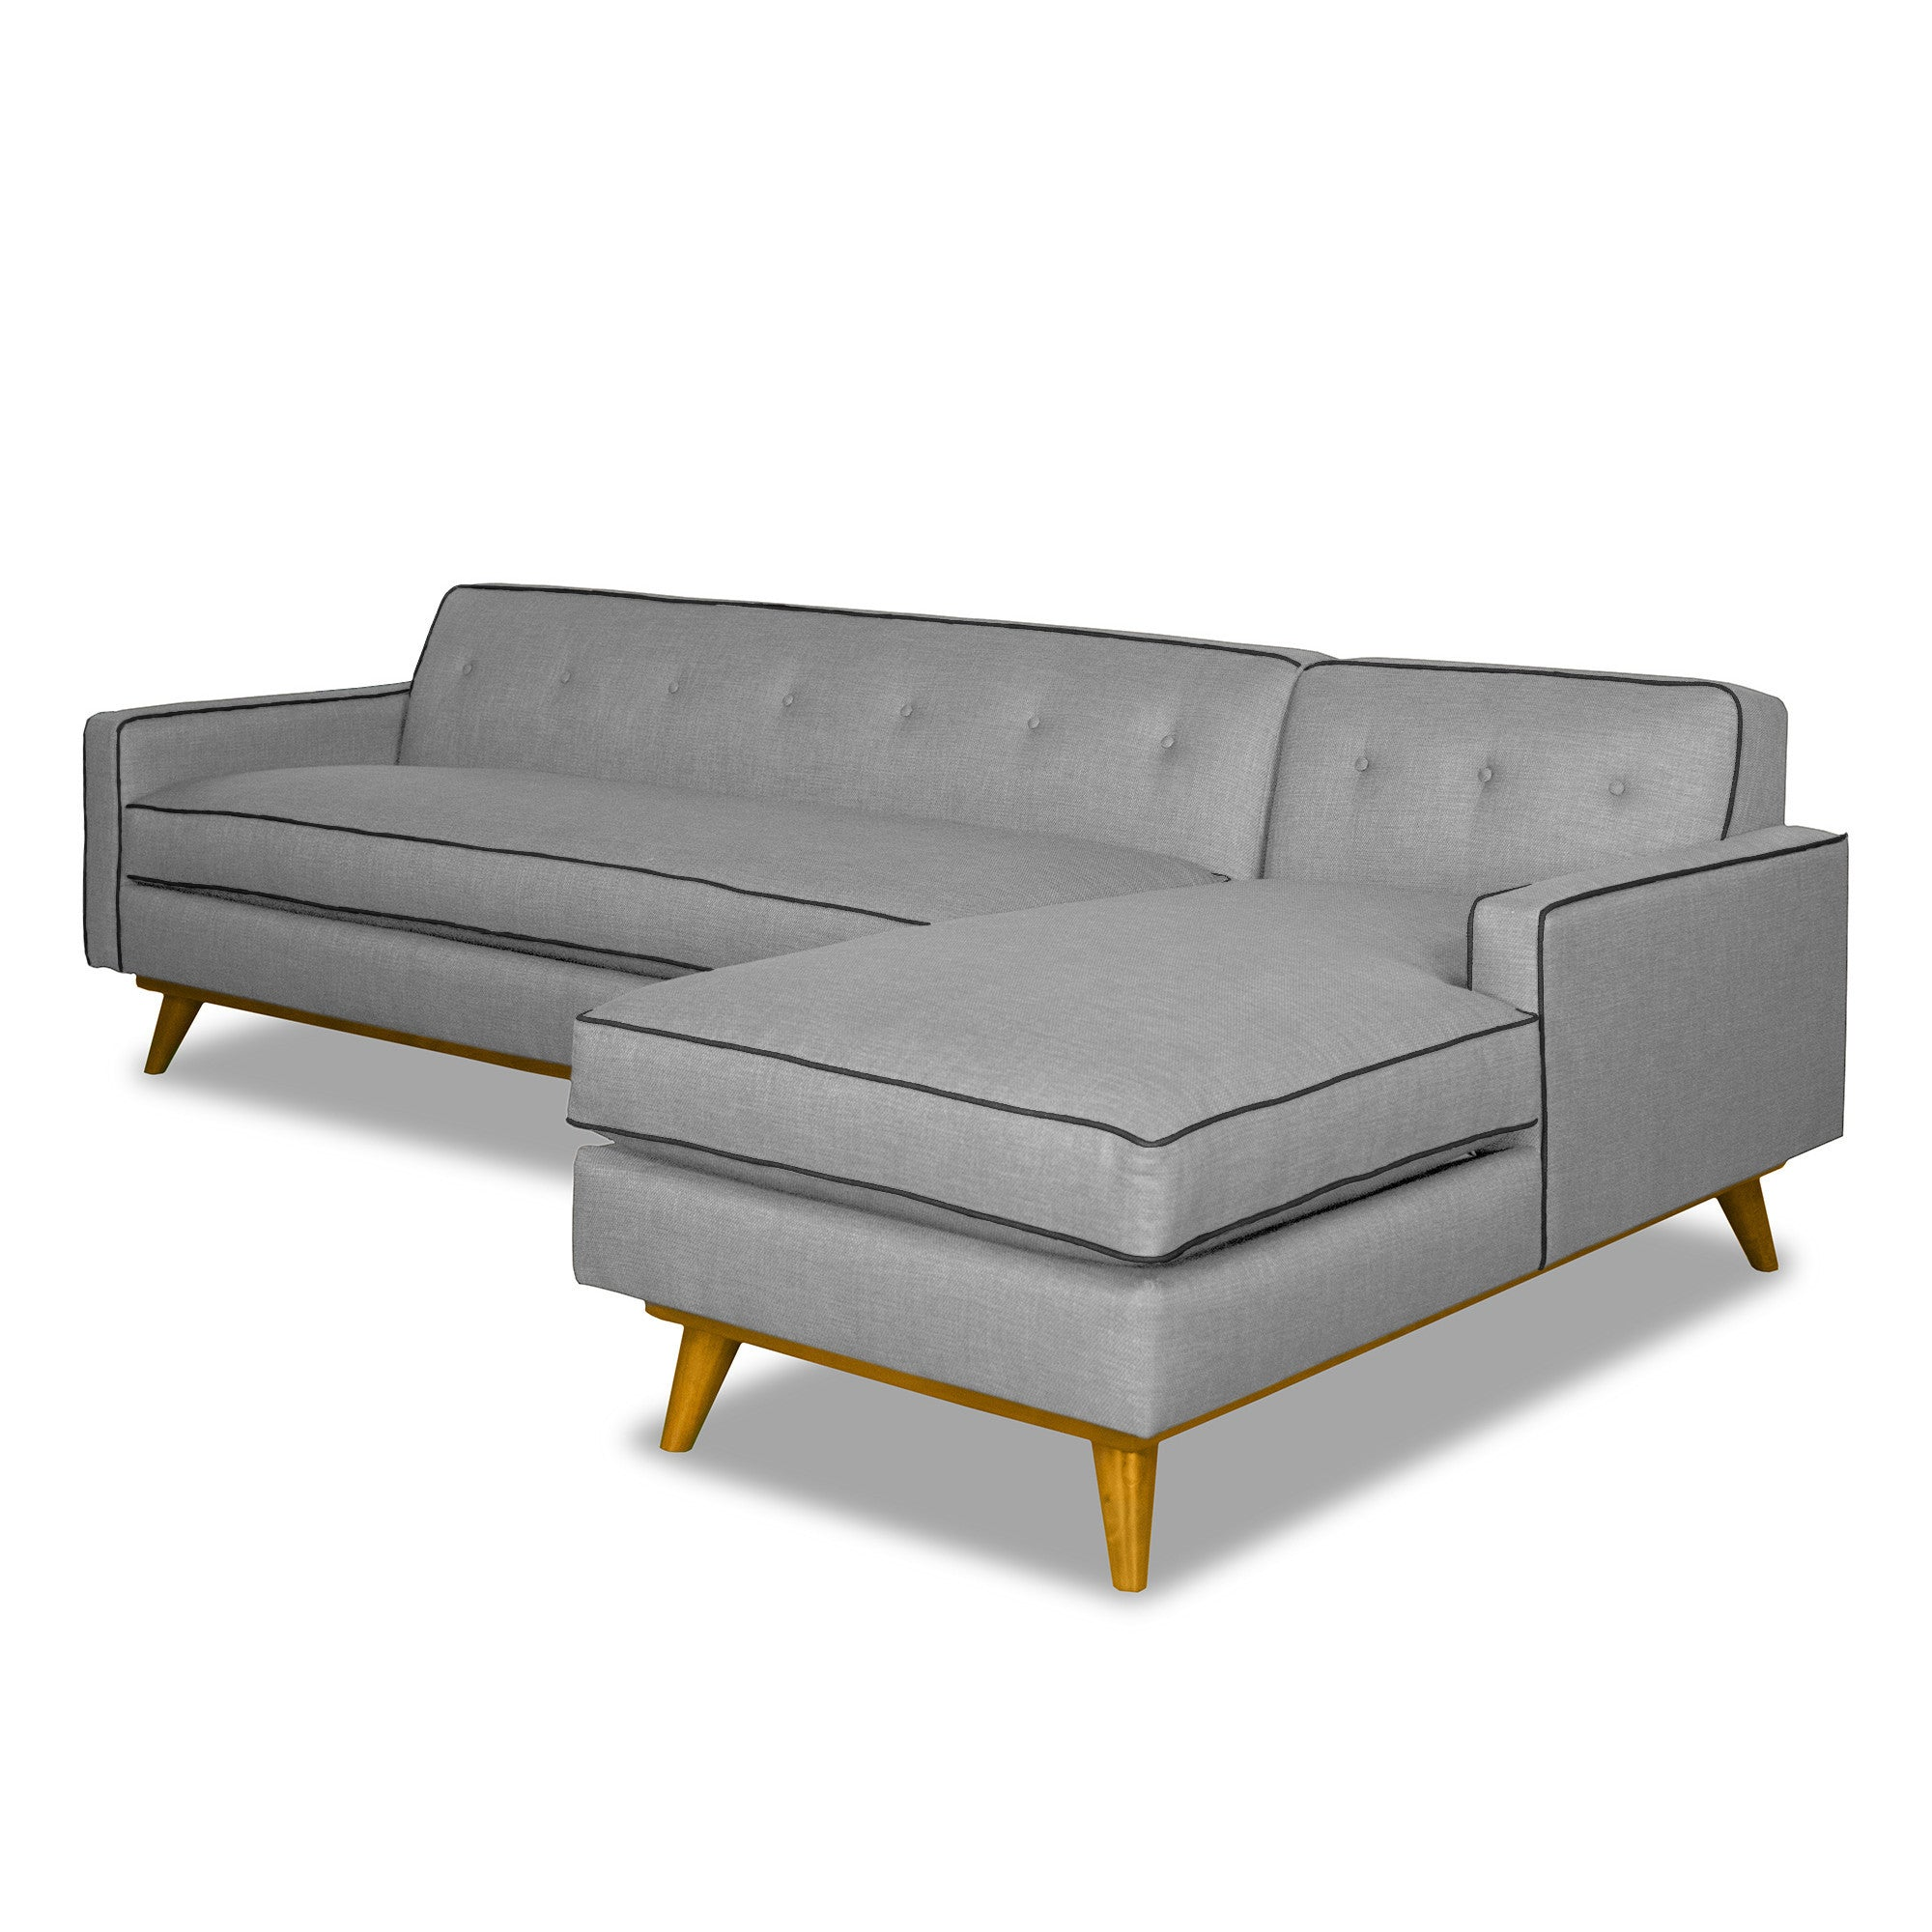 Modern Sectionals in Reversible 5 3 or 2 Piece Designs – Apt2B